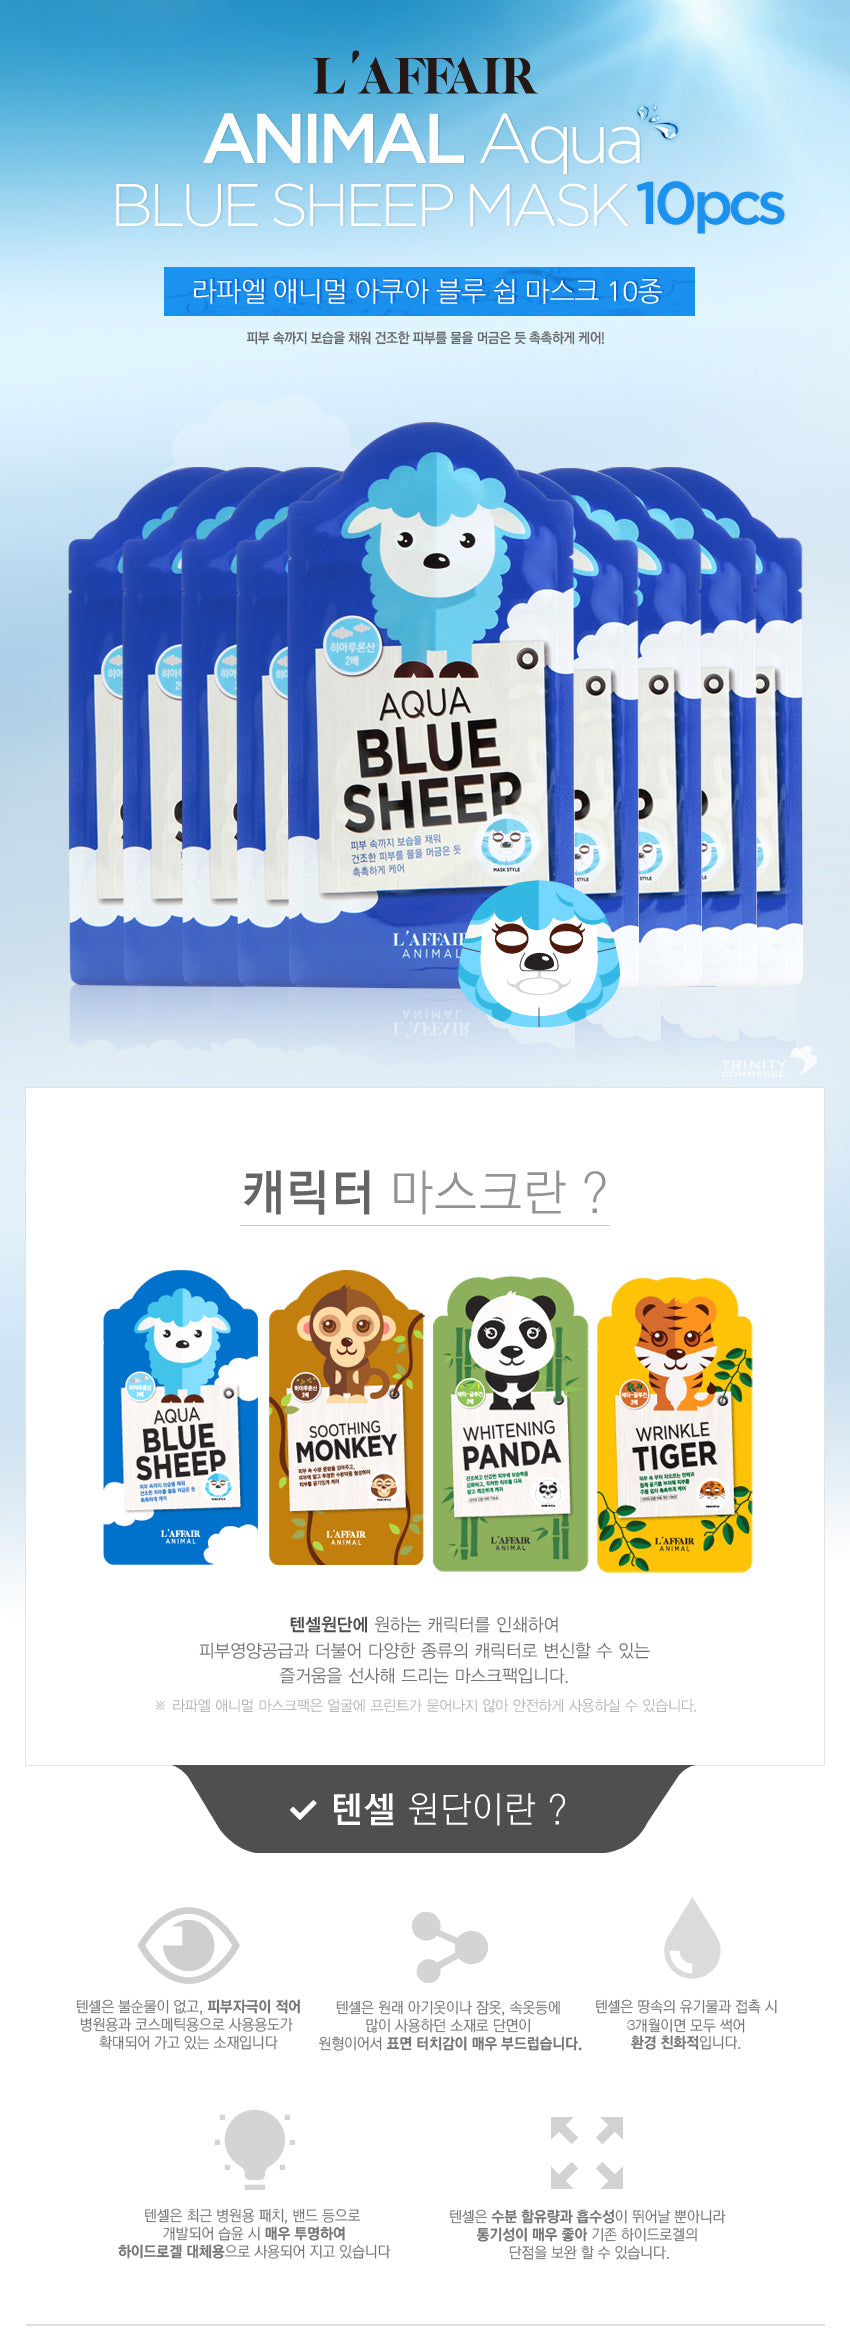 Animal Aqua Blue Sheep Mask